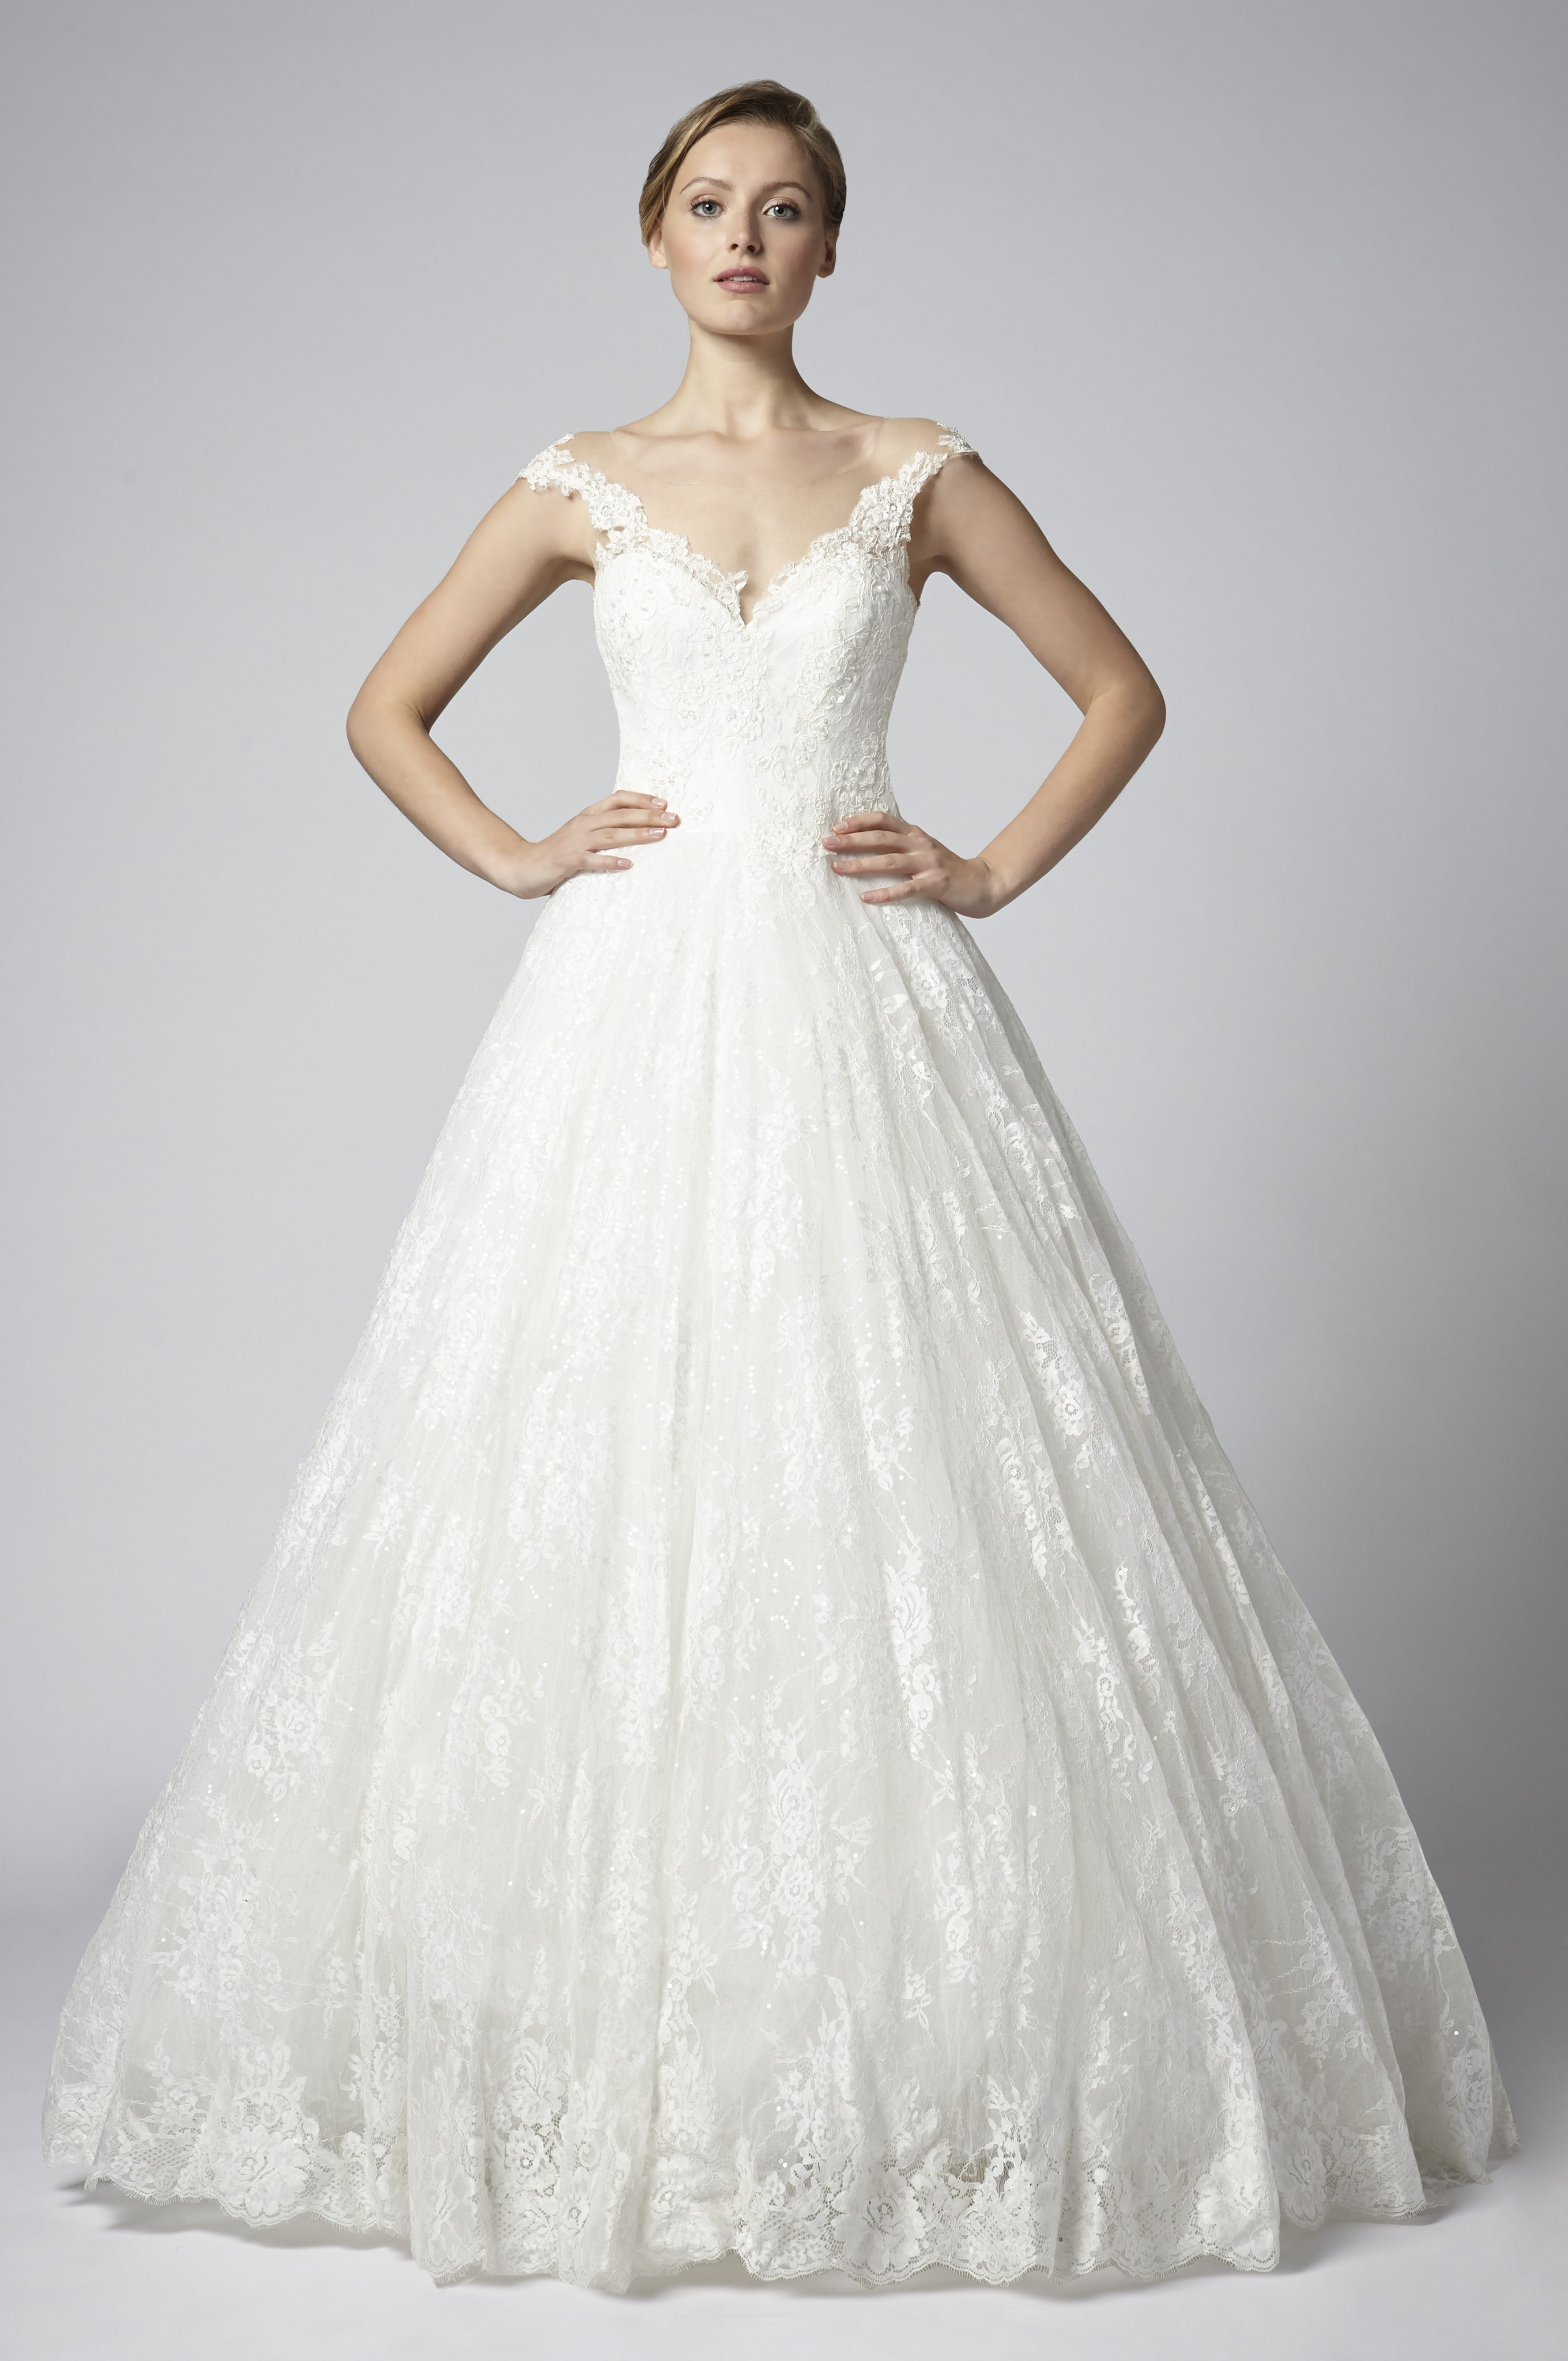 Off The Shoulder Ball Gown Wedding Dress With Lace Skirt | Kleinfeld ...